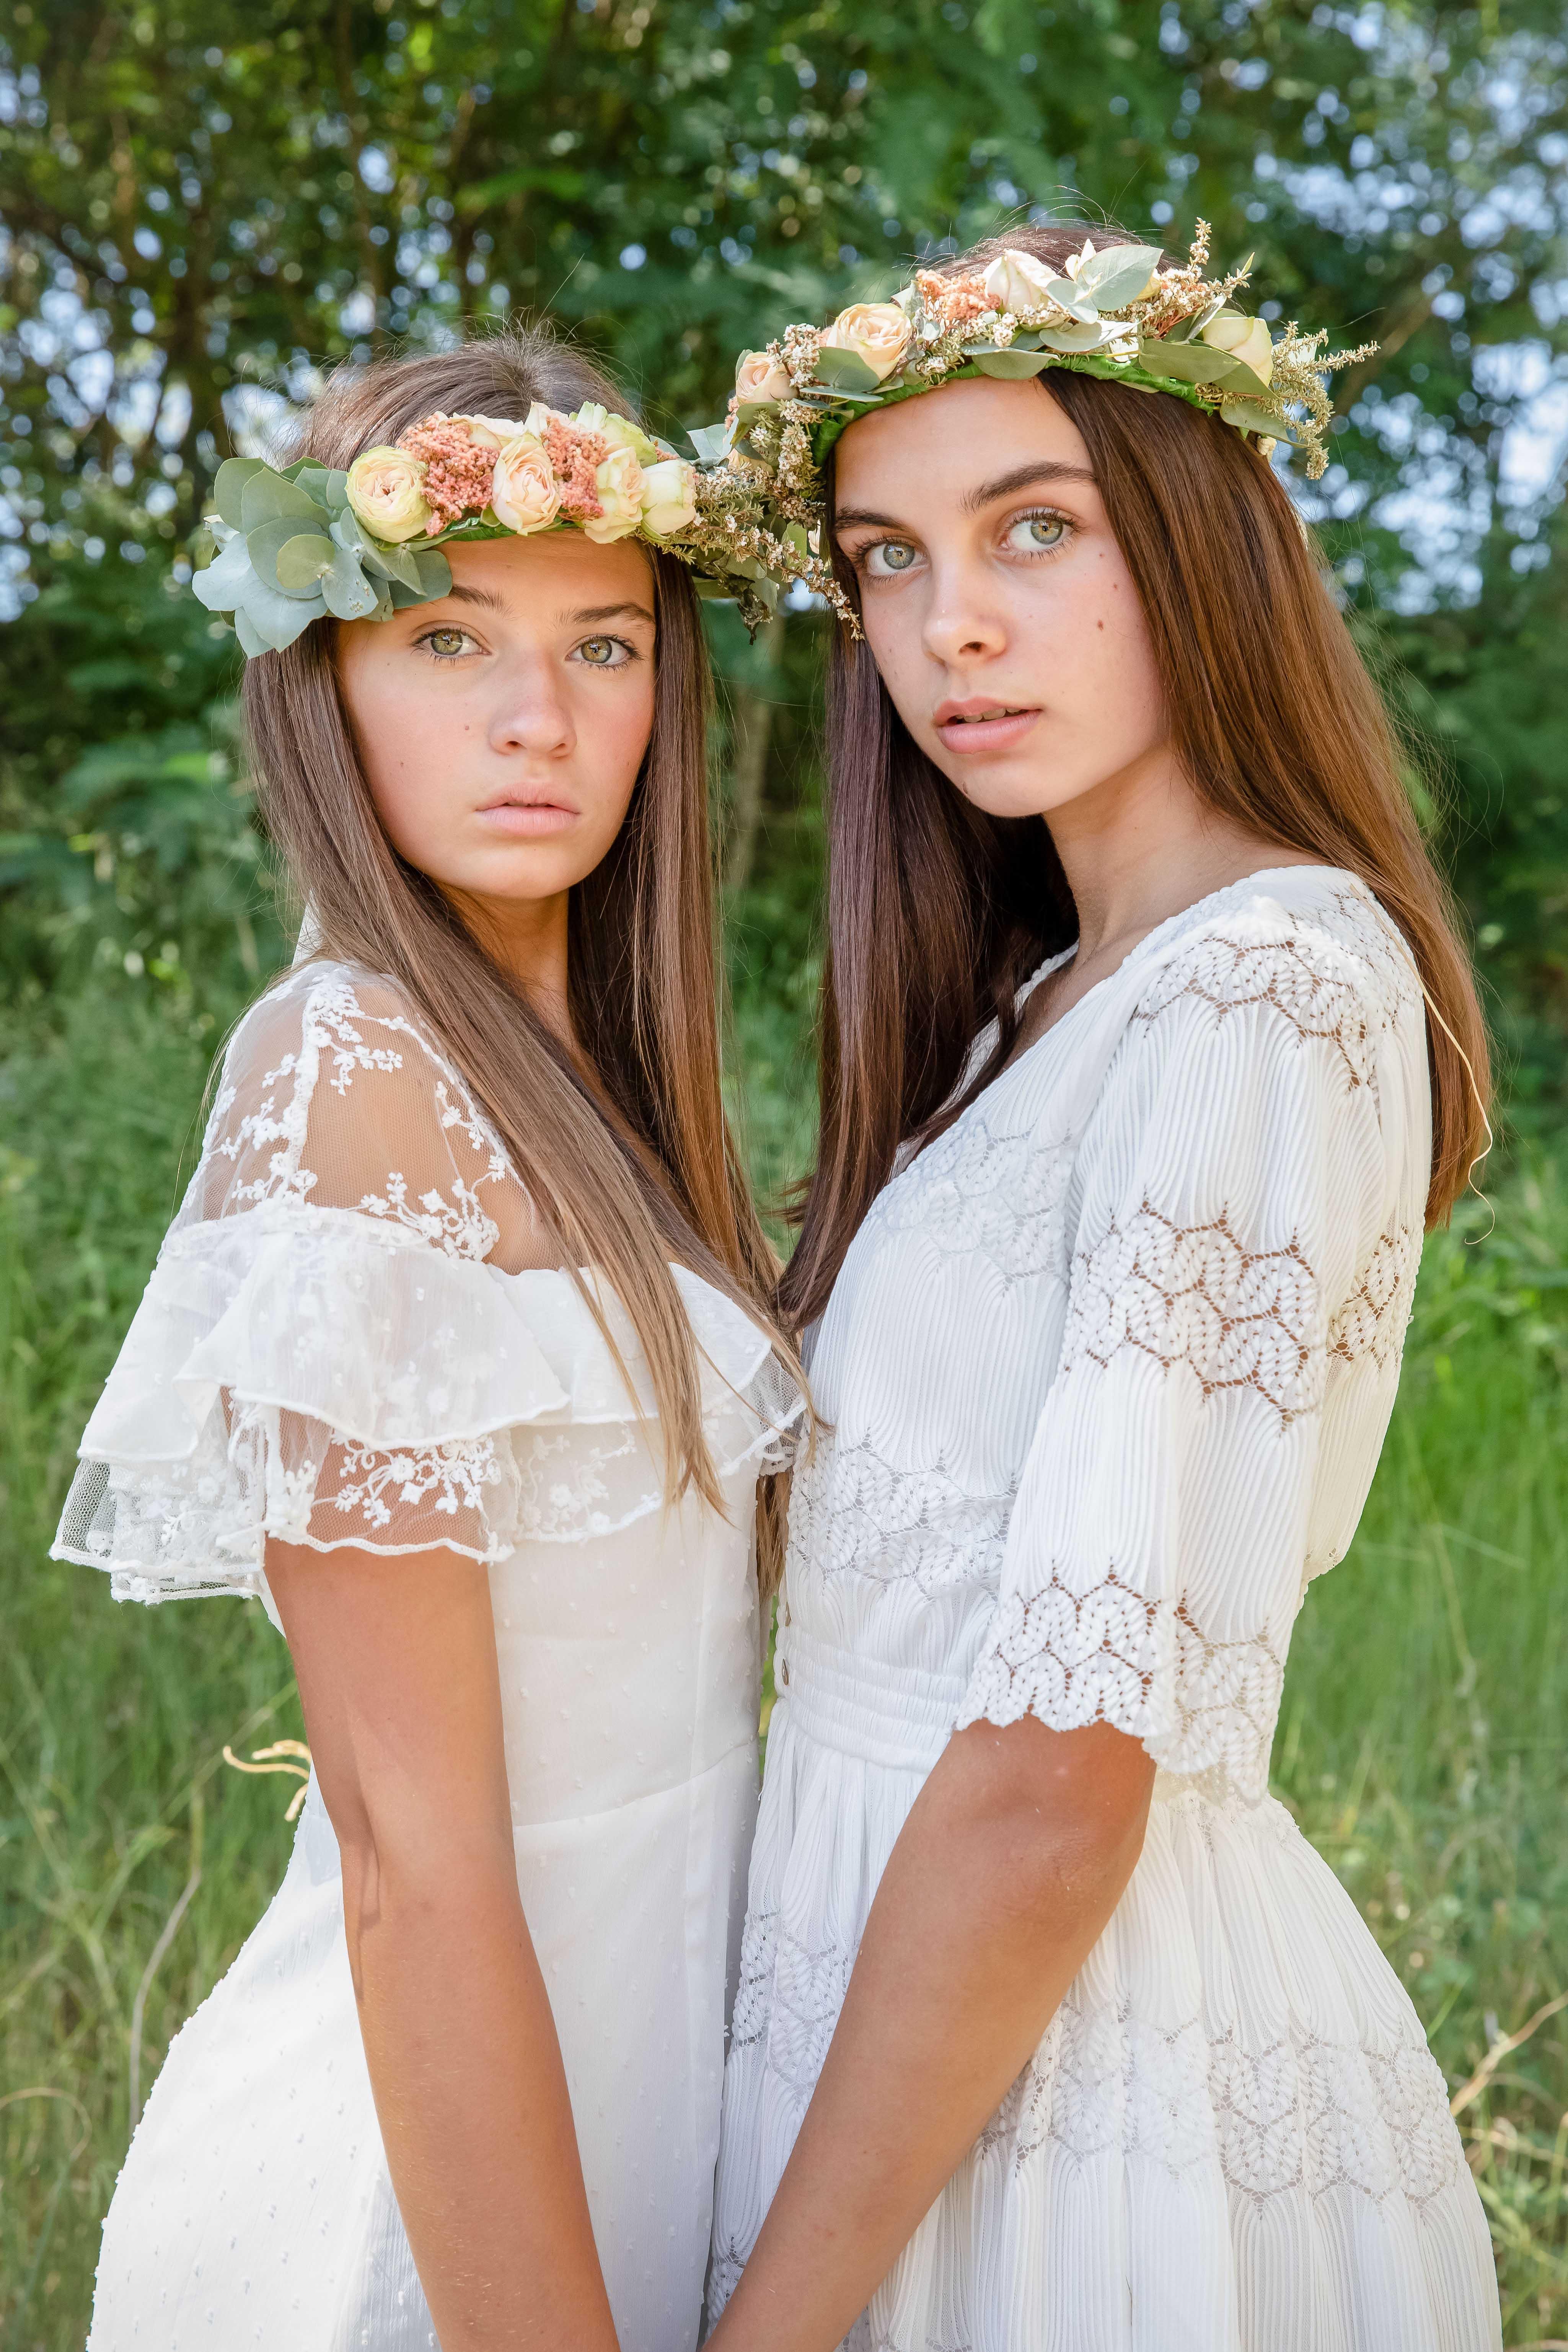 Models, flower crown, boho wedding